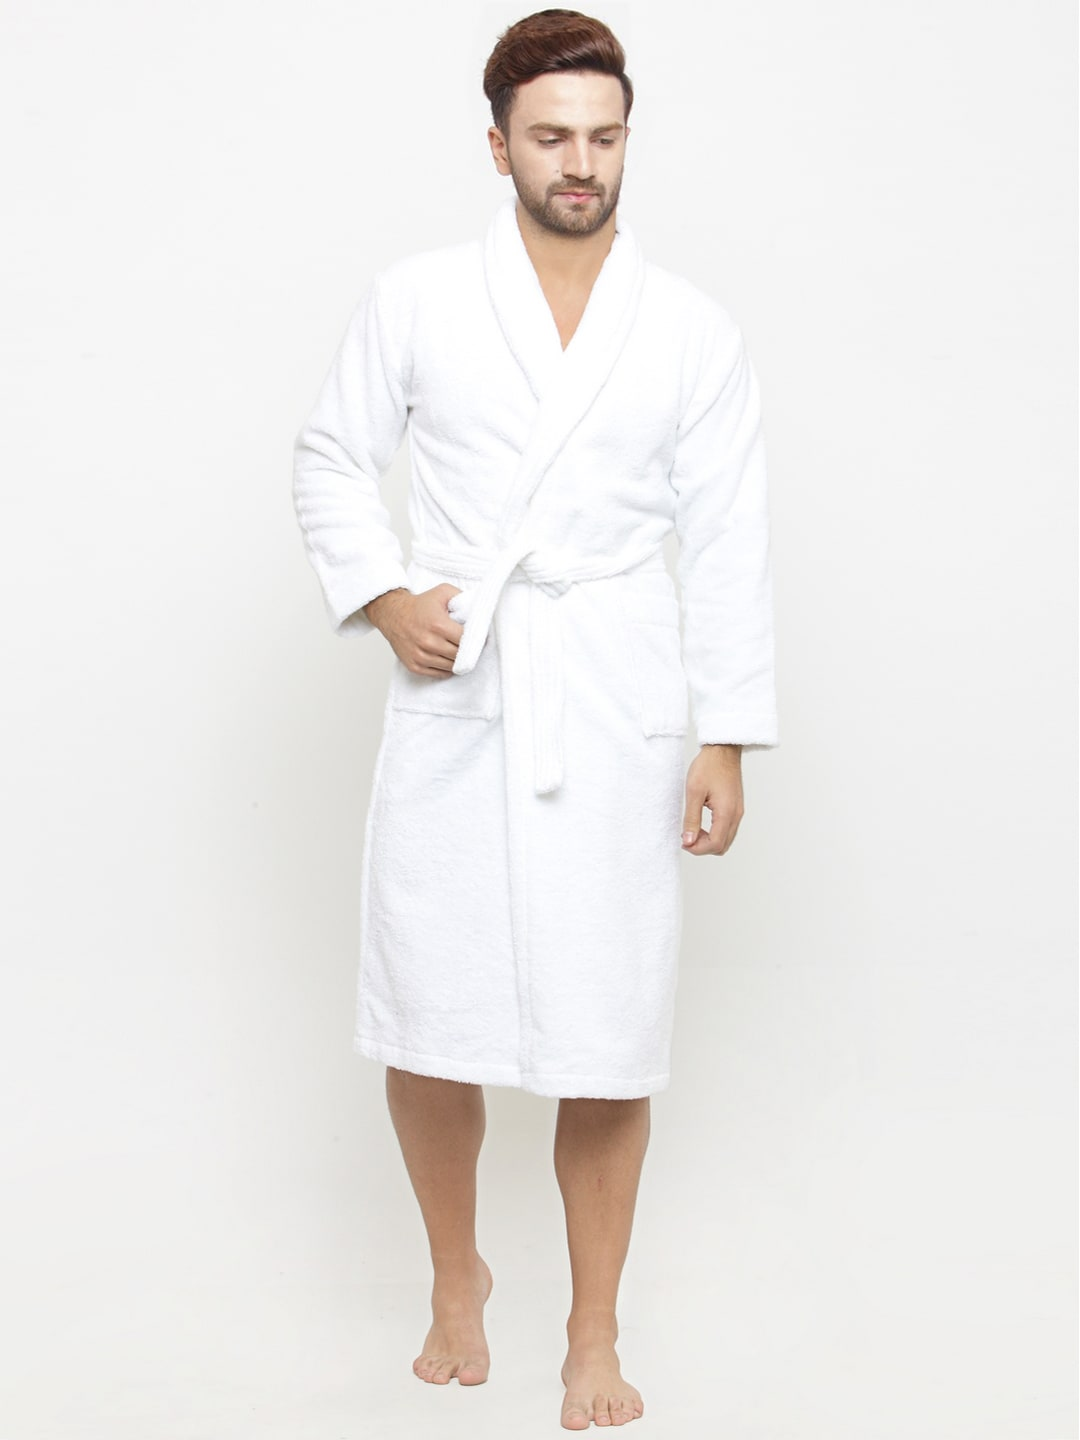 Bath Robe - Buy Bath Robes Online in India  ec33013d9